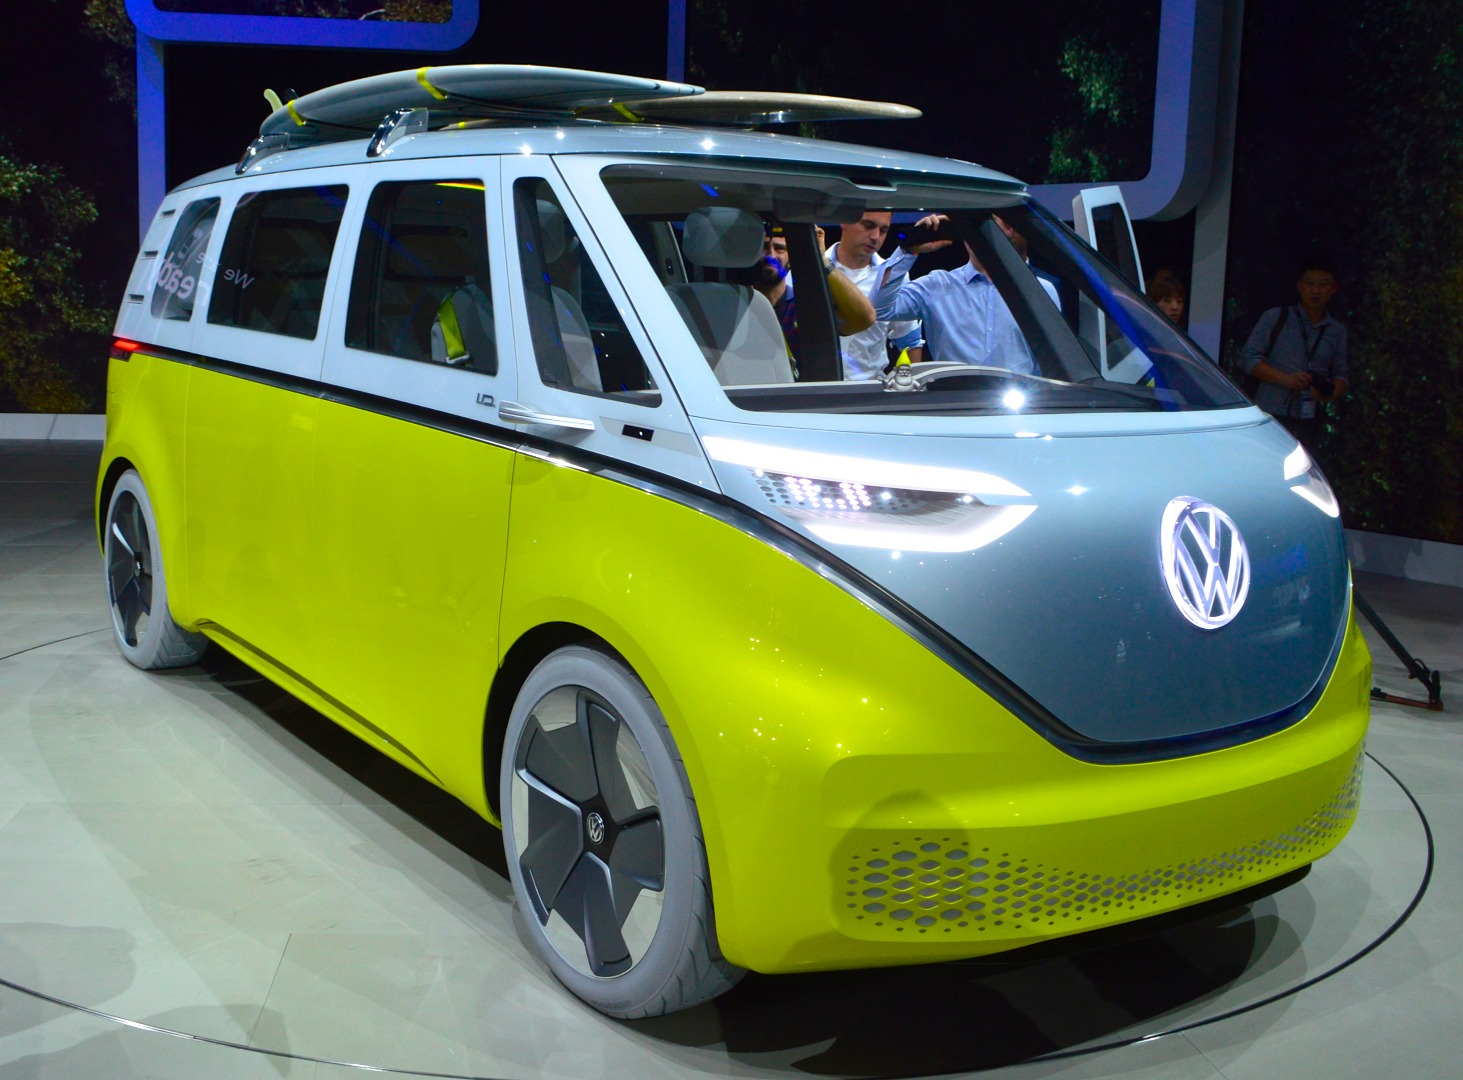 After debuting the ID. Buzz at NAIAS 2017, Volkswagen later announced its intentions to pursue production